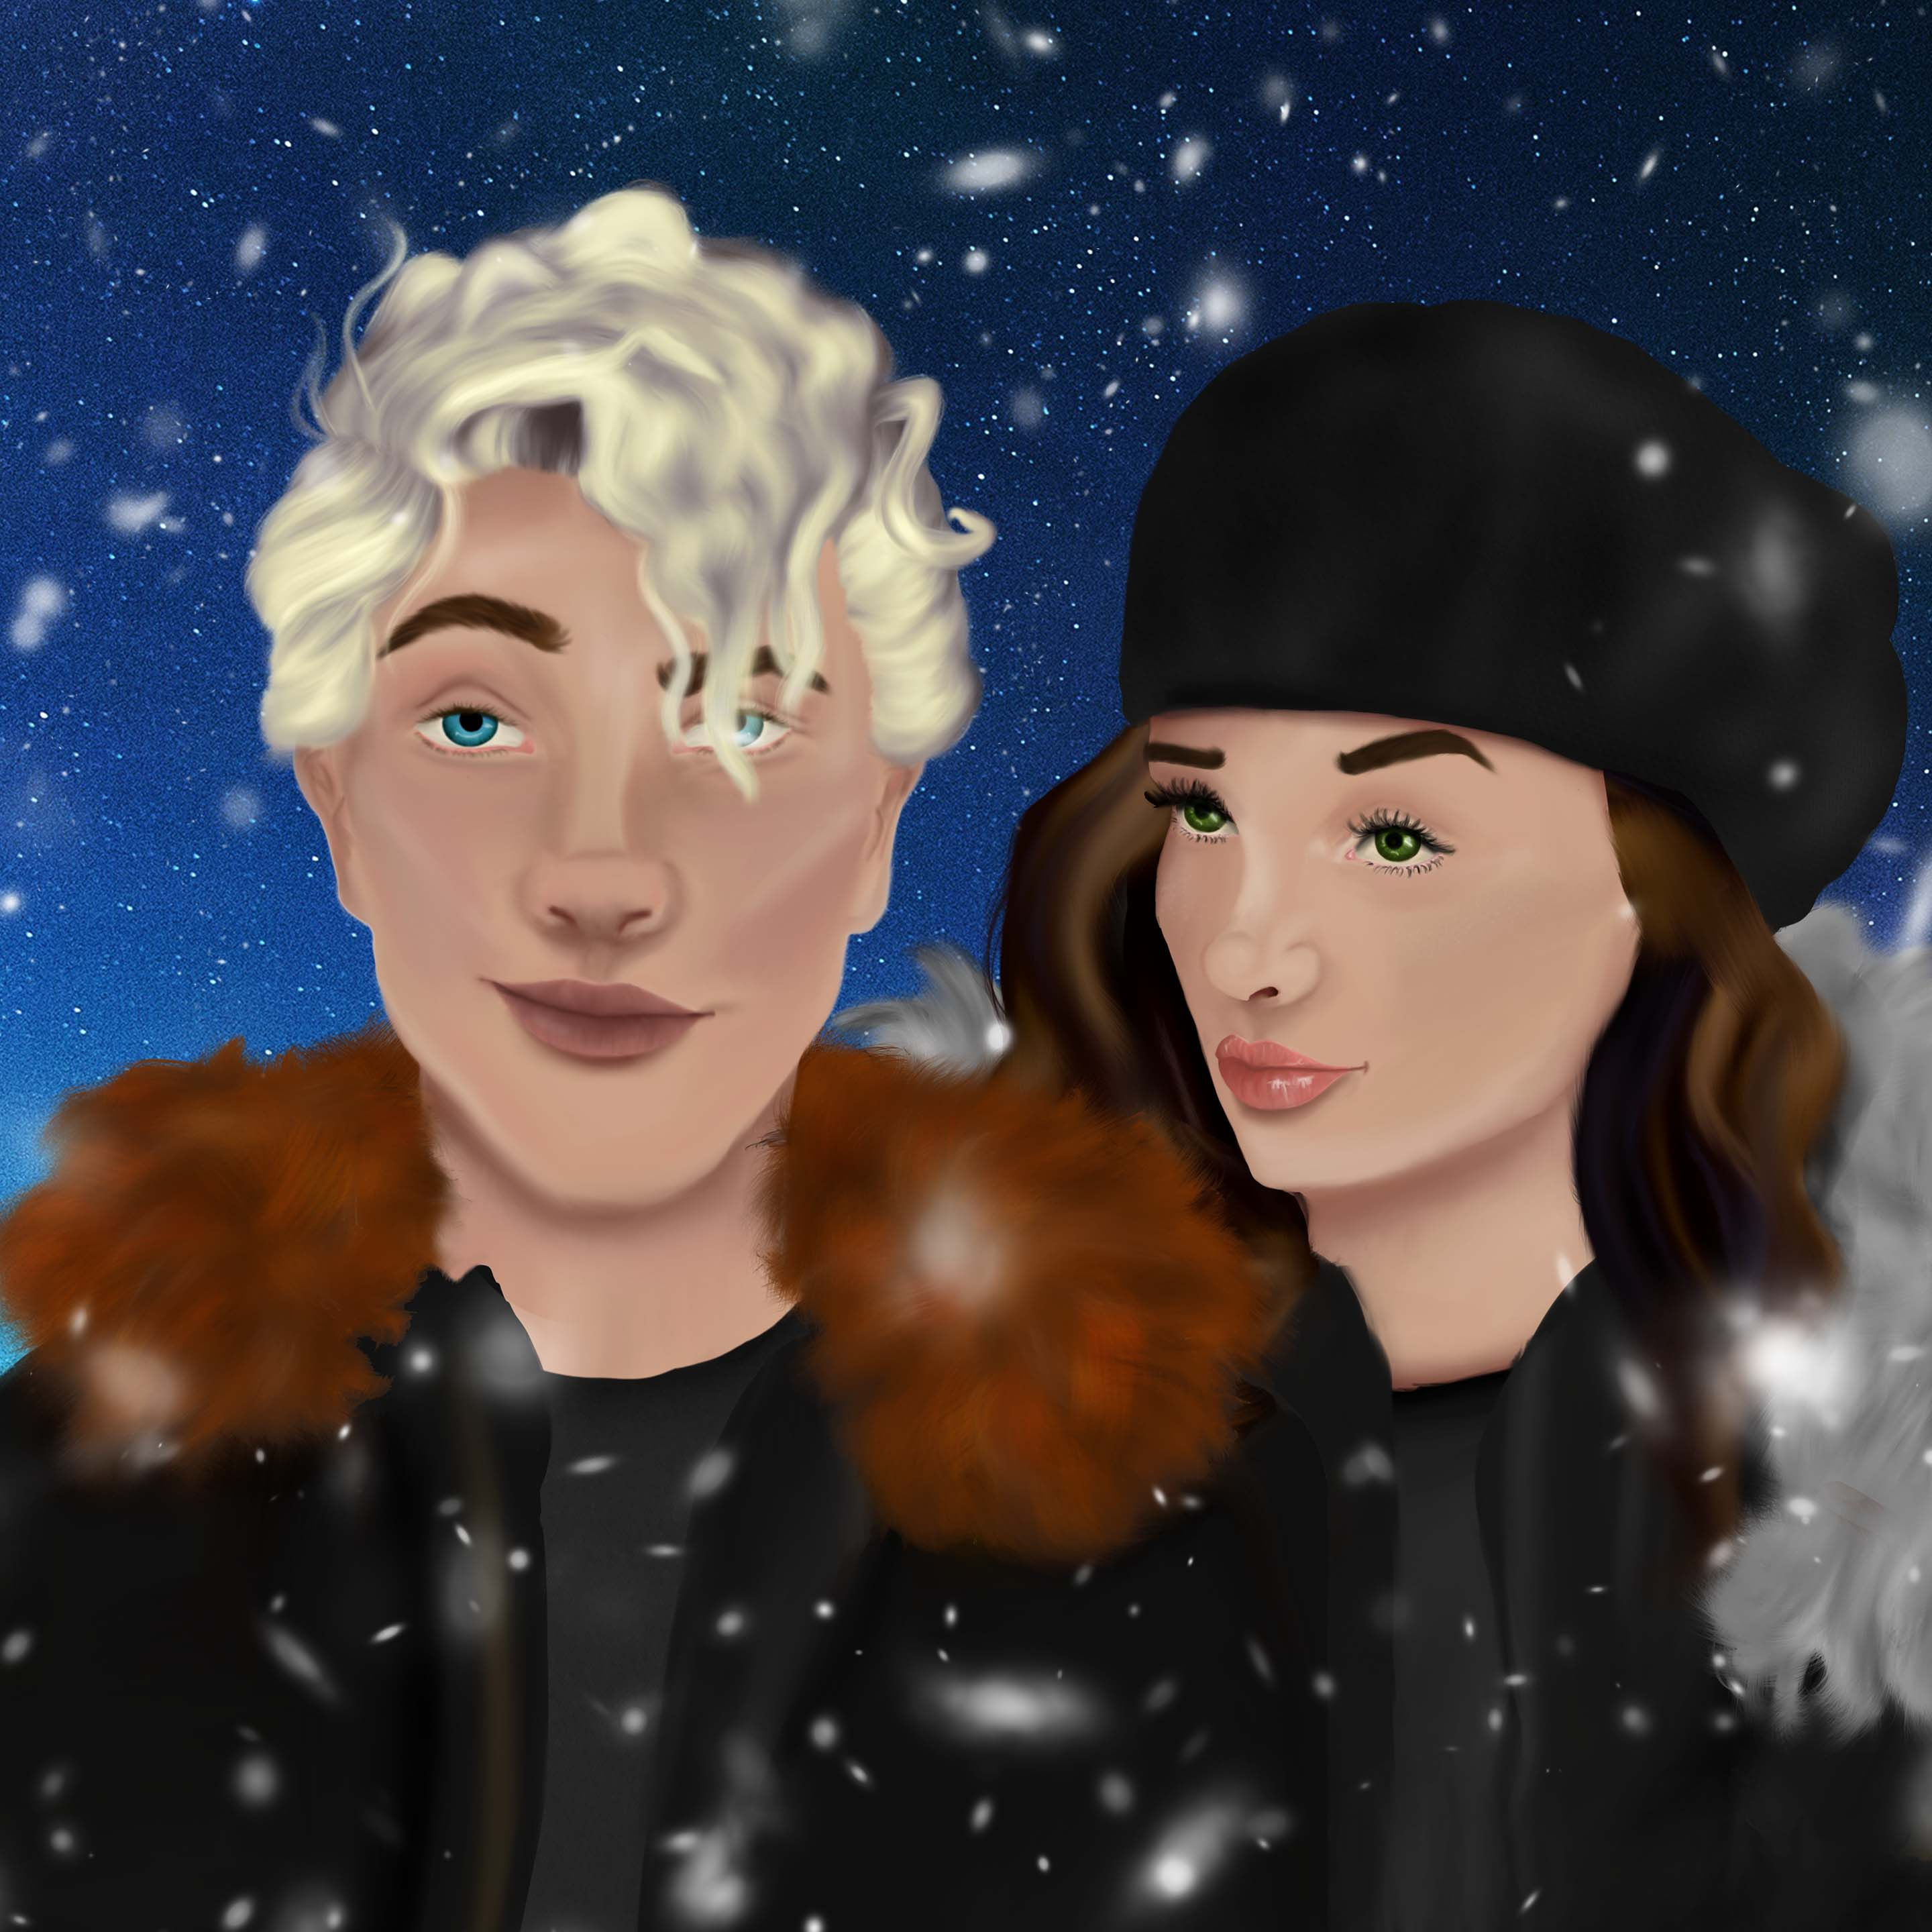 Jack and Gen 2 sky and snow